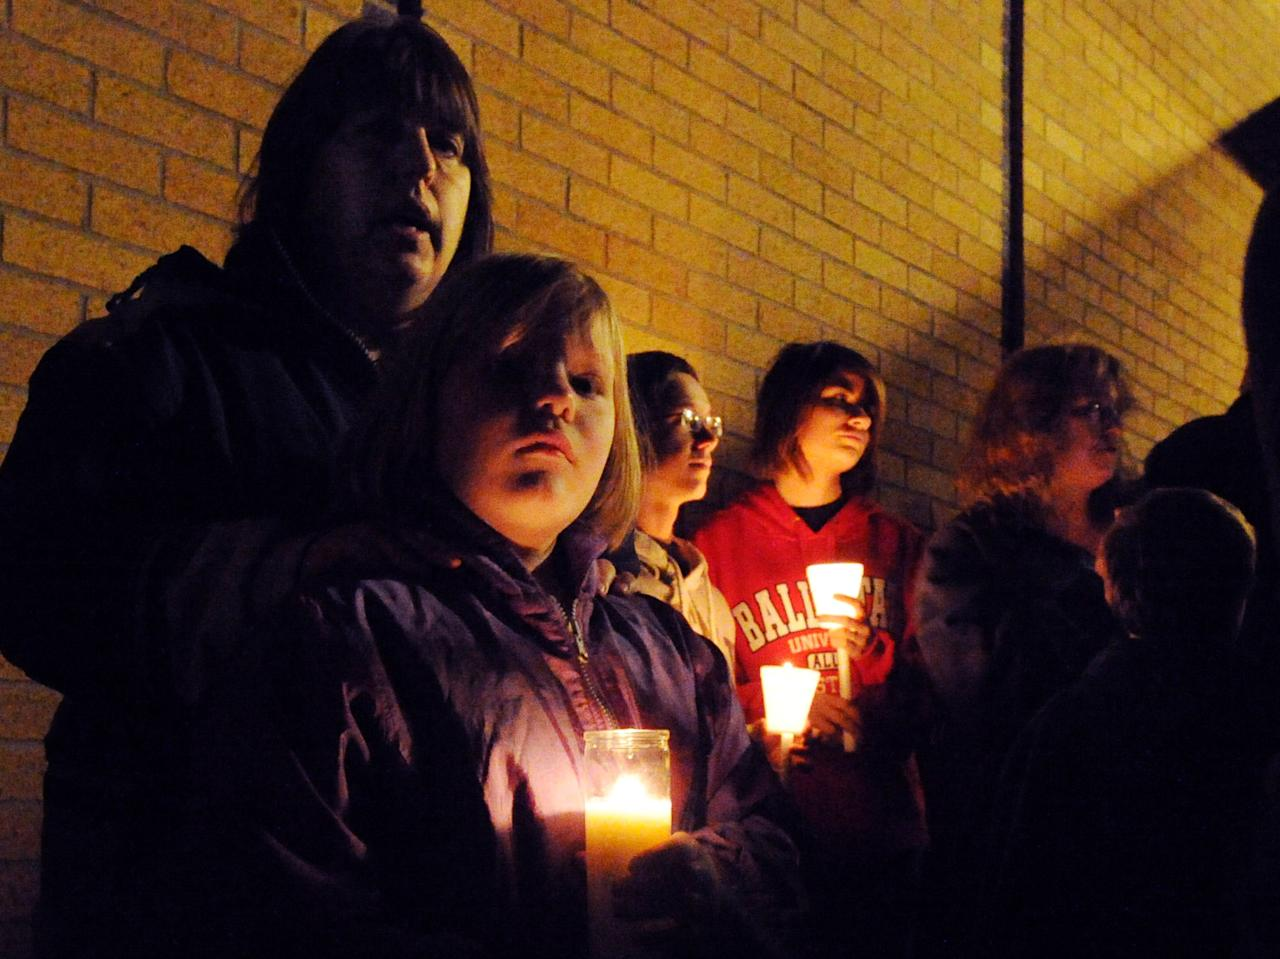 Ahna McCue and her daughter Emily attend a candlelight vigil, Sunday, Nov. 11, 2012, at Southwest Elementary School in Greenwood, Ind., for teacher Jennifer Longworth. Officials did not identify the two people who were killed in a blast on Saturday. However, a candlelight vigil was held for second-grade teacher Jennifer Longworth. She and her husband, John Dion Longworth, lived at a home destroyed in the blast. (AP Photo/The Indianapolis Star, Rob Goebel)